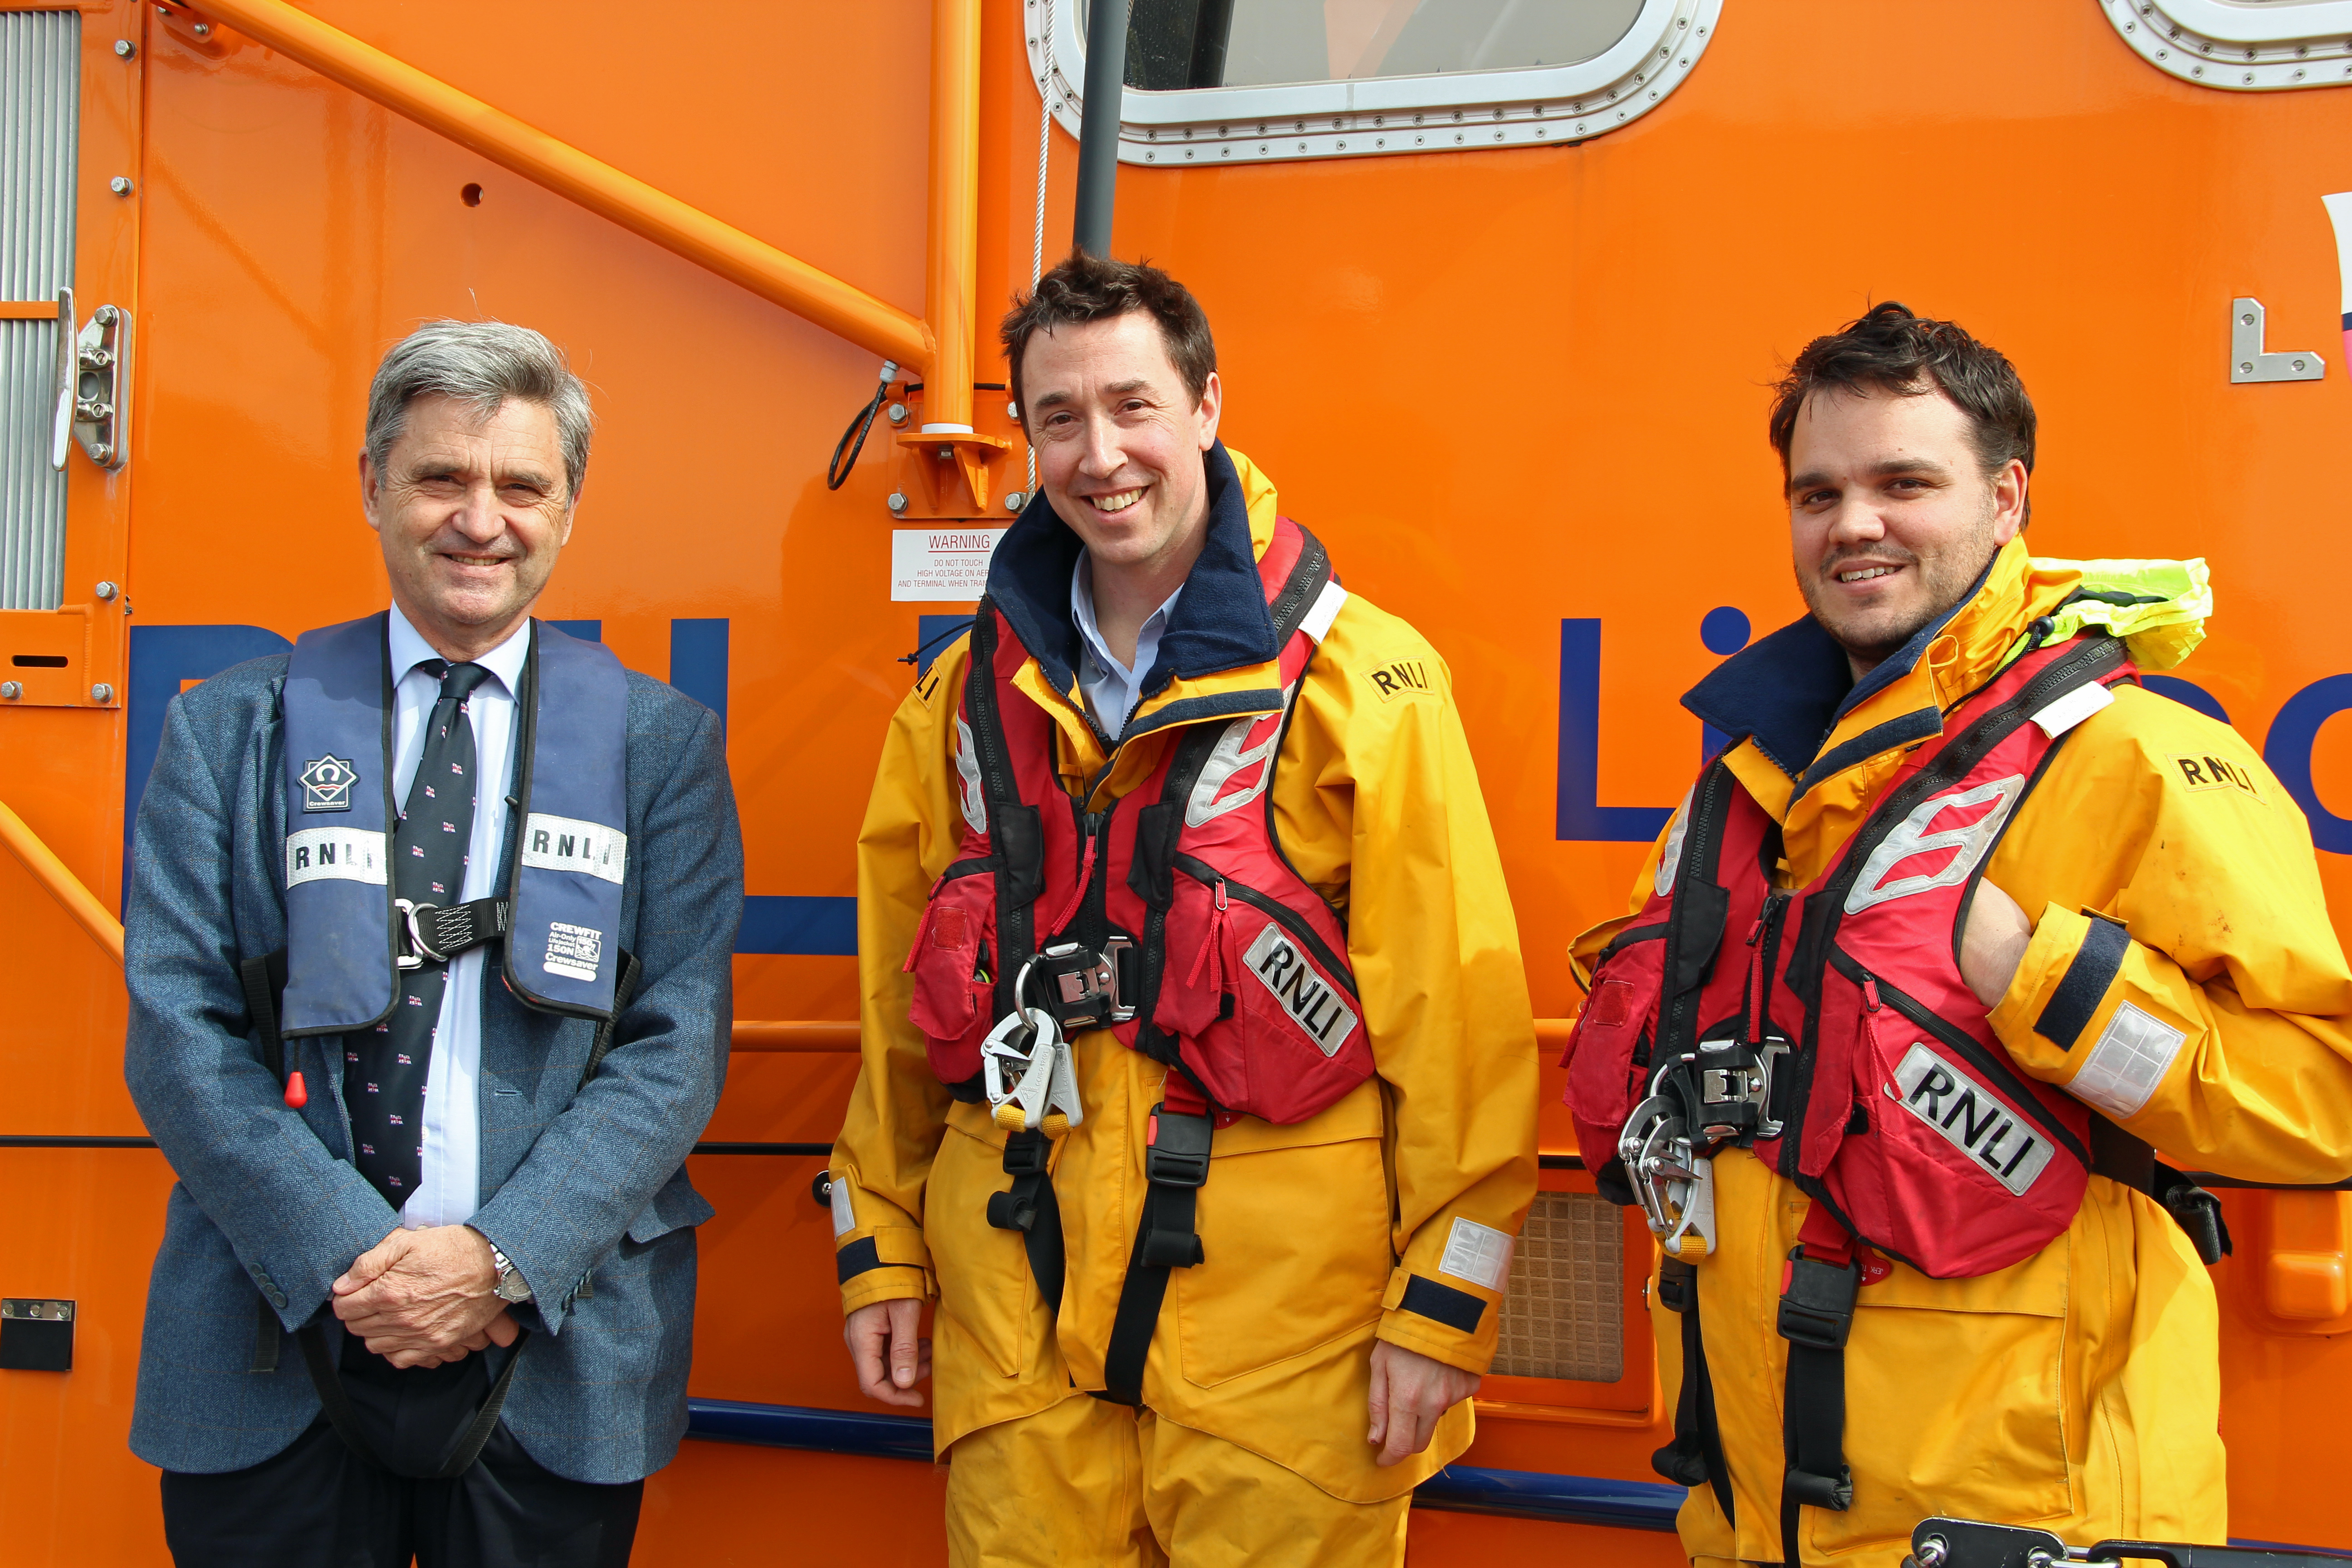 Paul Boissier (RNLI Chief Executive) meets RNLI Jersey crew members (l to r) James Hope and Gibby Gordon